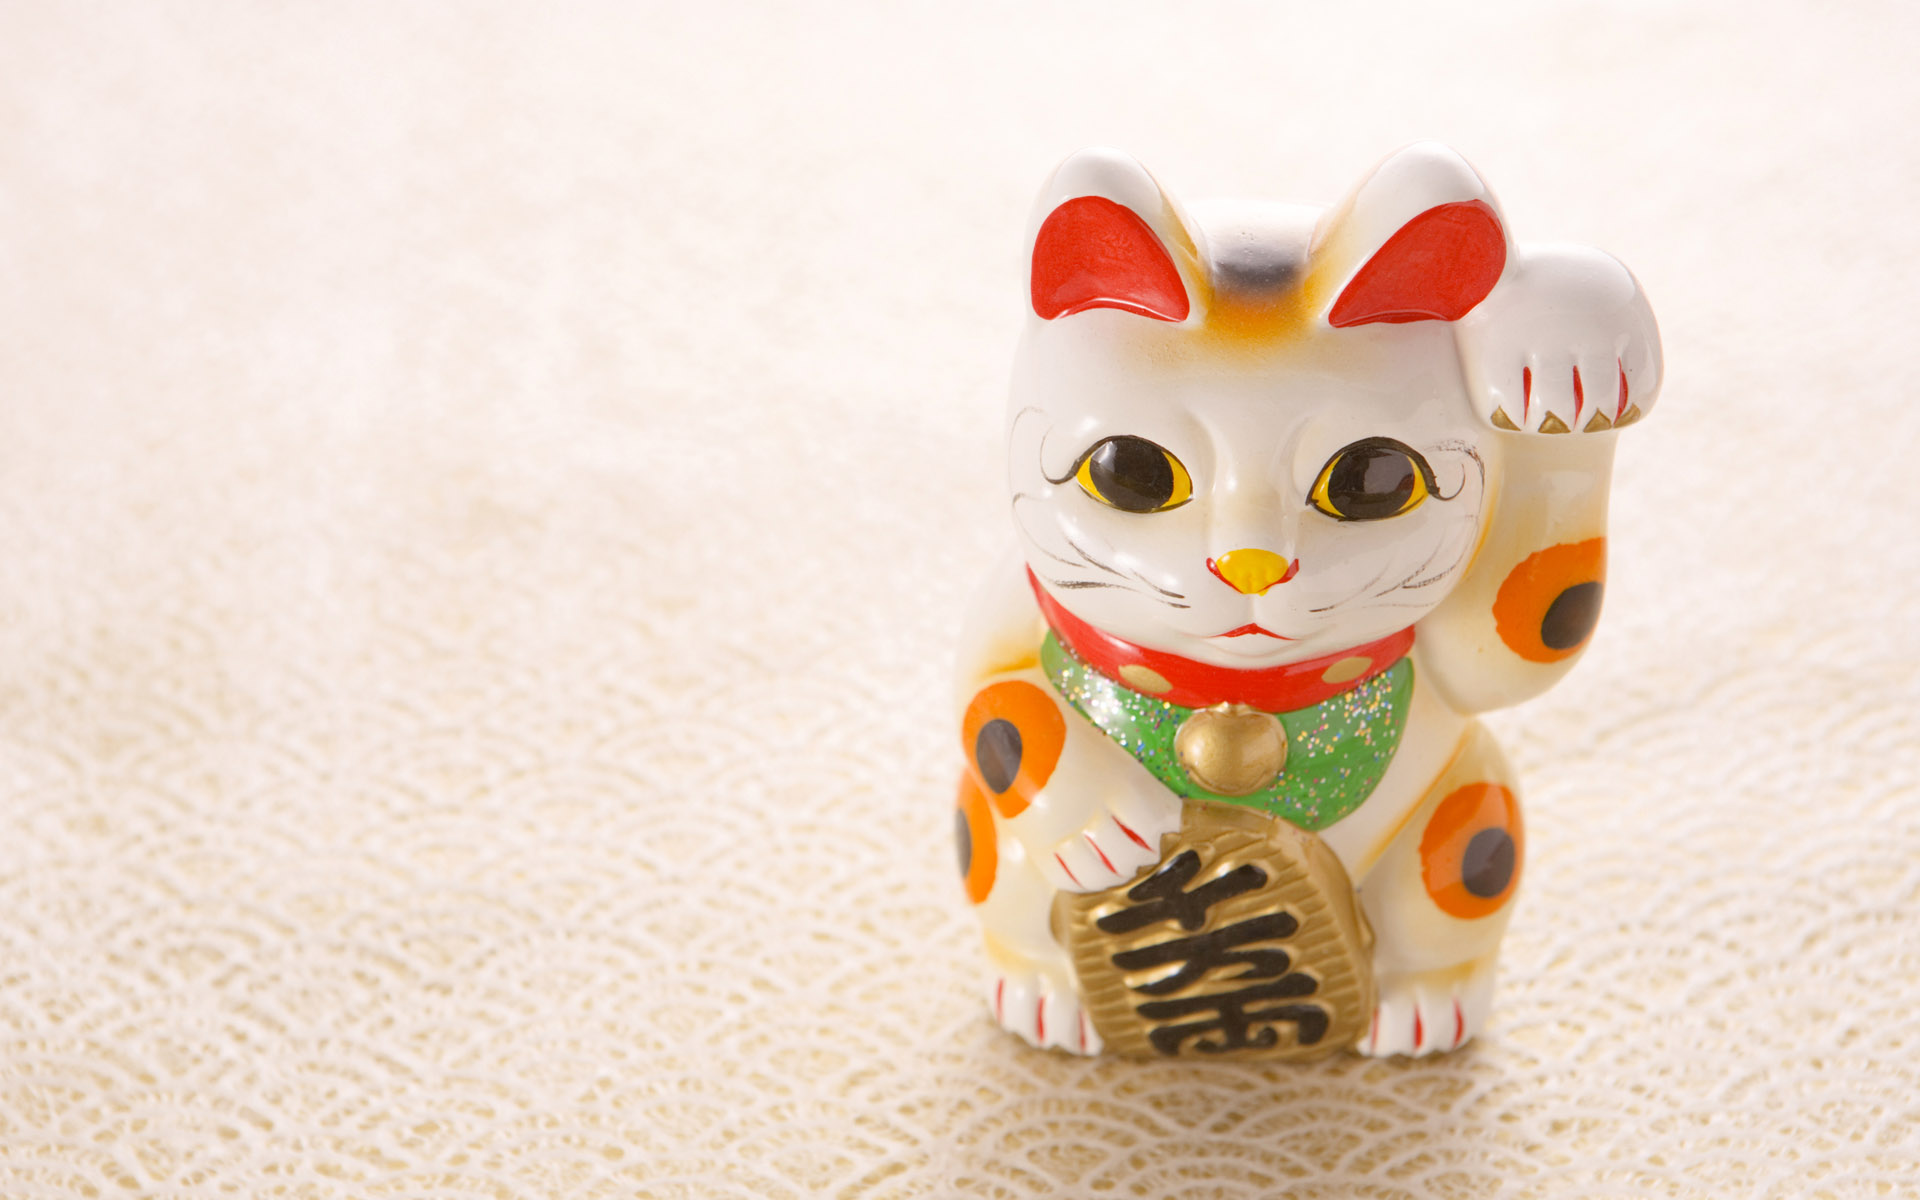 Japanese New Year and cultural material 10583